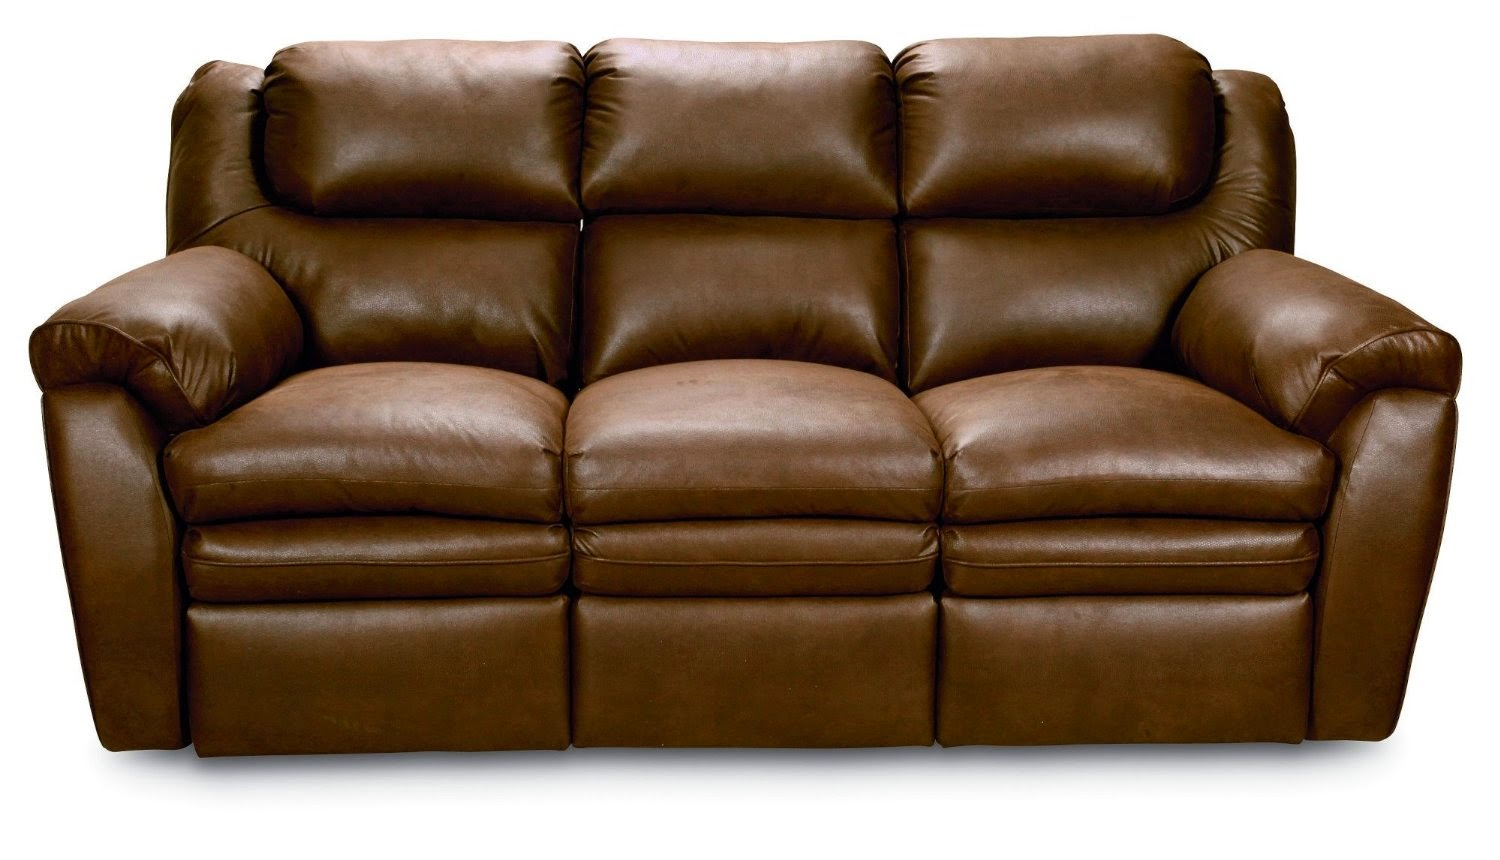 Costco Leather Power Reclining Sofa